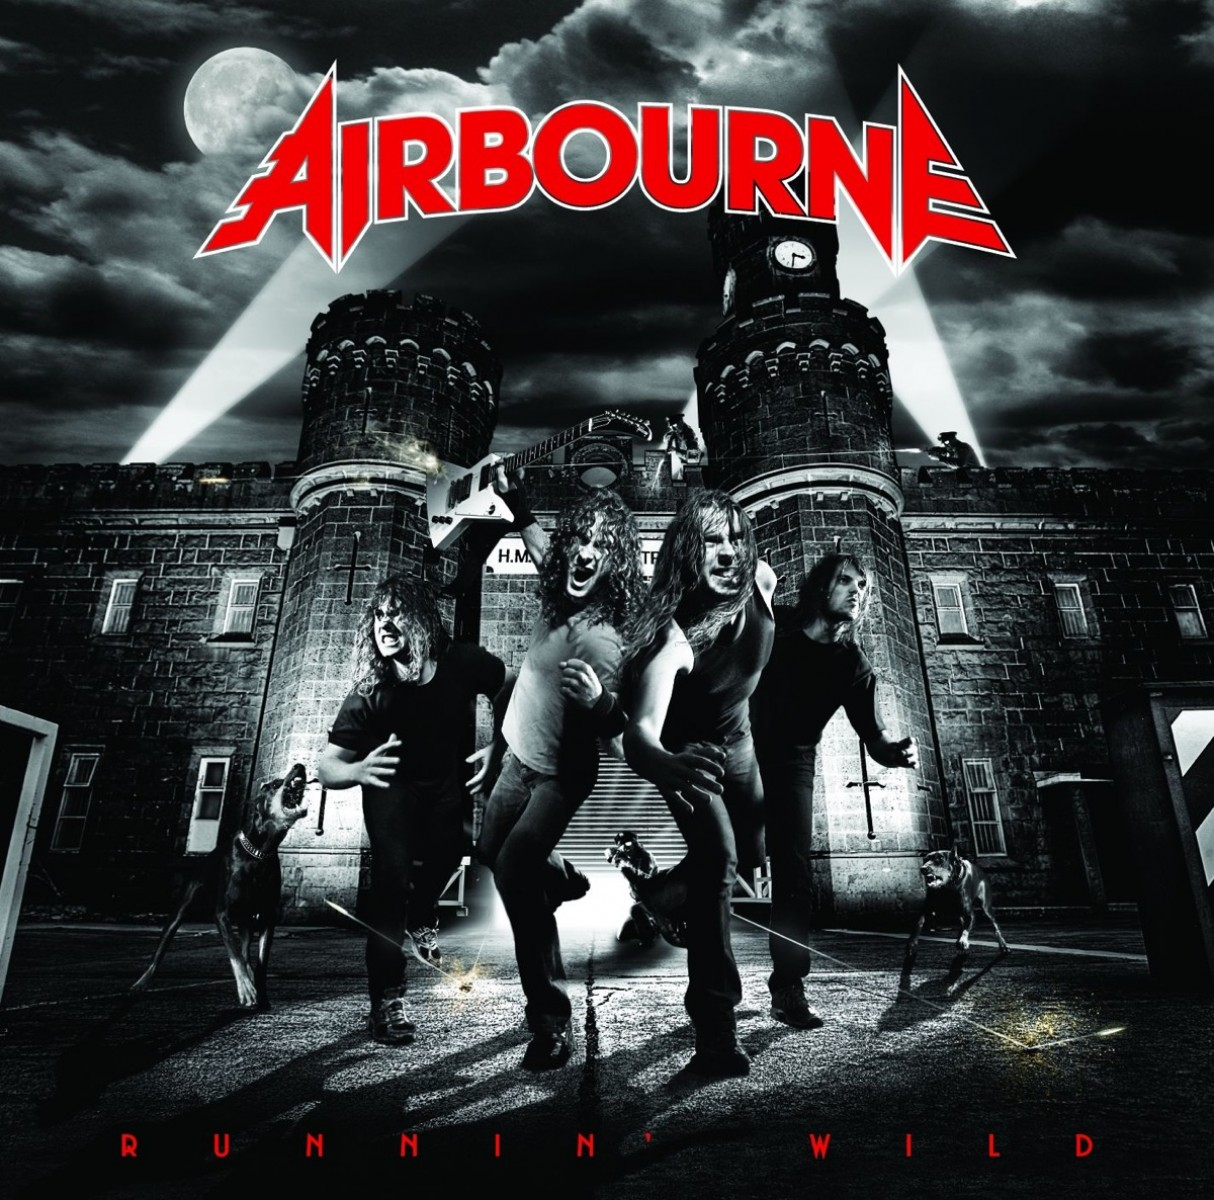 Airbourne - Runnin' Wild VINYL - 6700310571